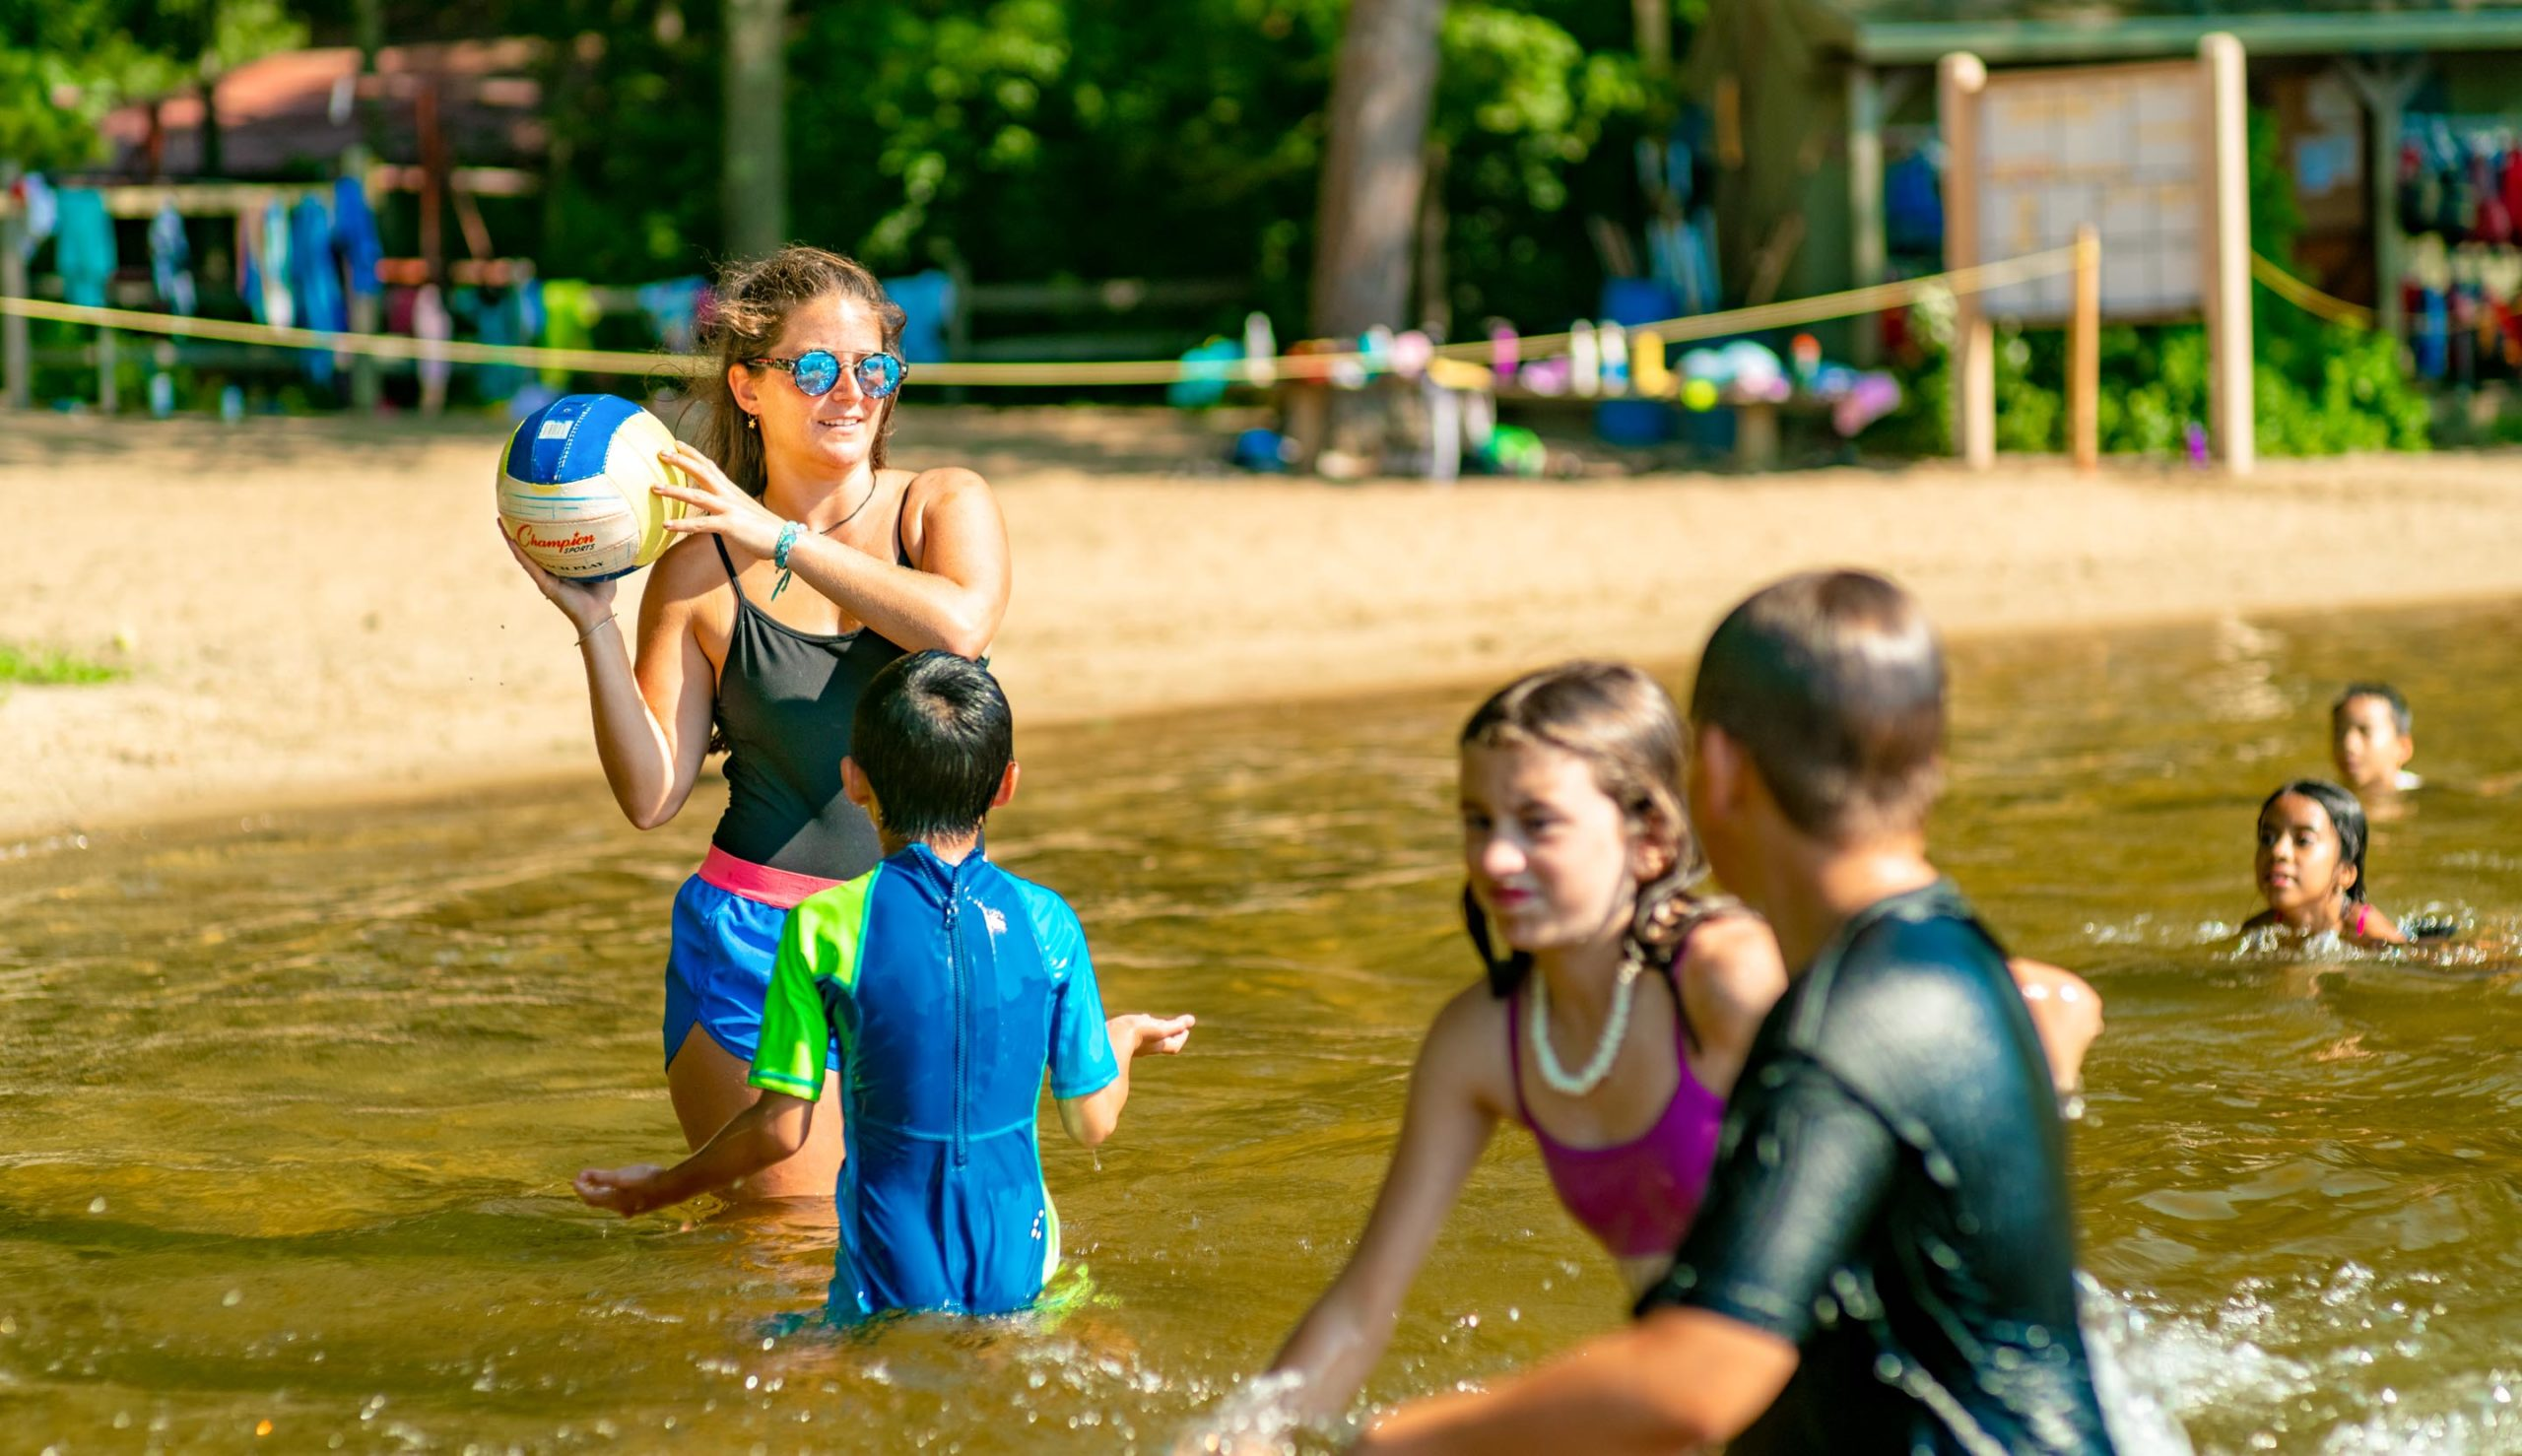 Counselor playing ball with campers in the water